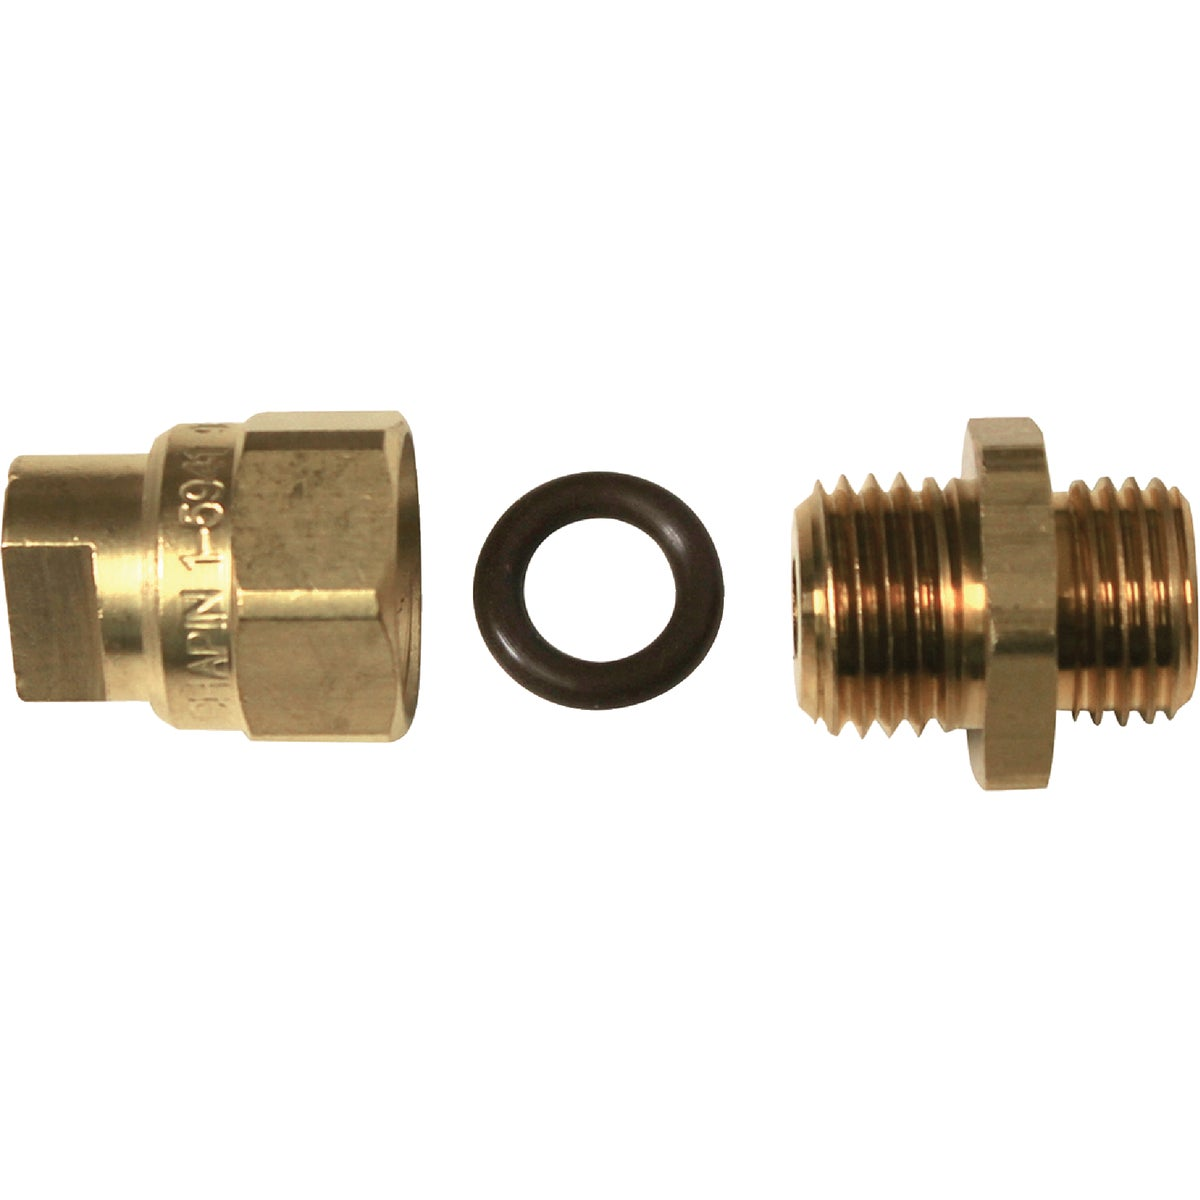 BRASS FAN NOZZLE - 6-5797 by Chapin Mfg